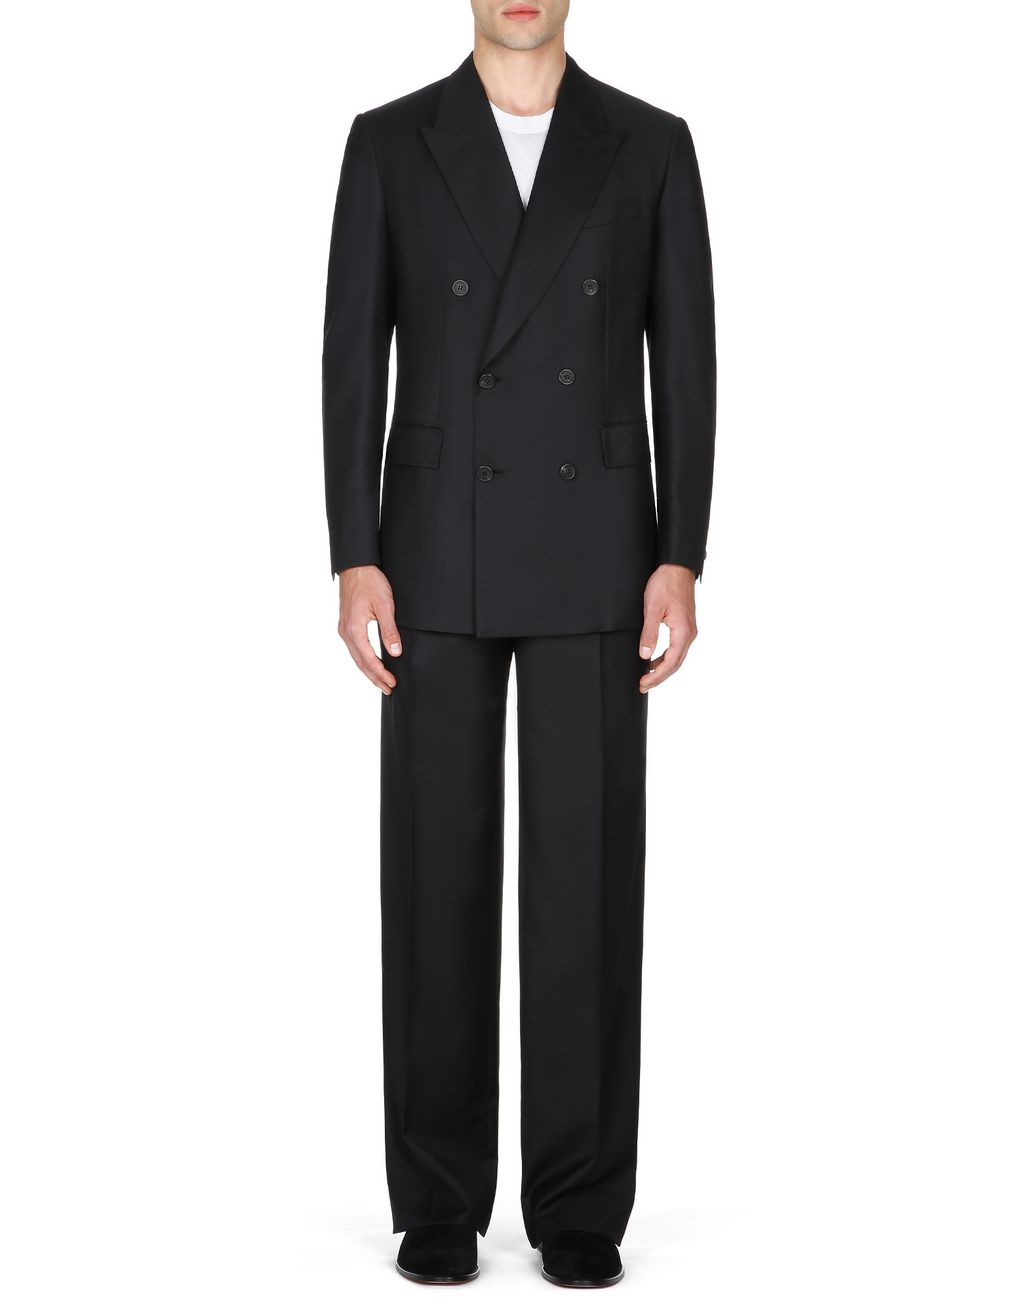 BRIONI Black Asmara Double-Breasted Suit Suits & Jackets Man r